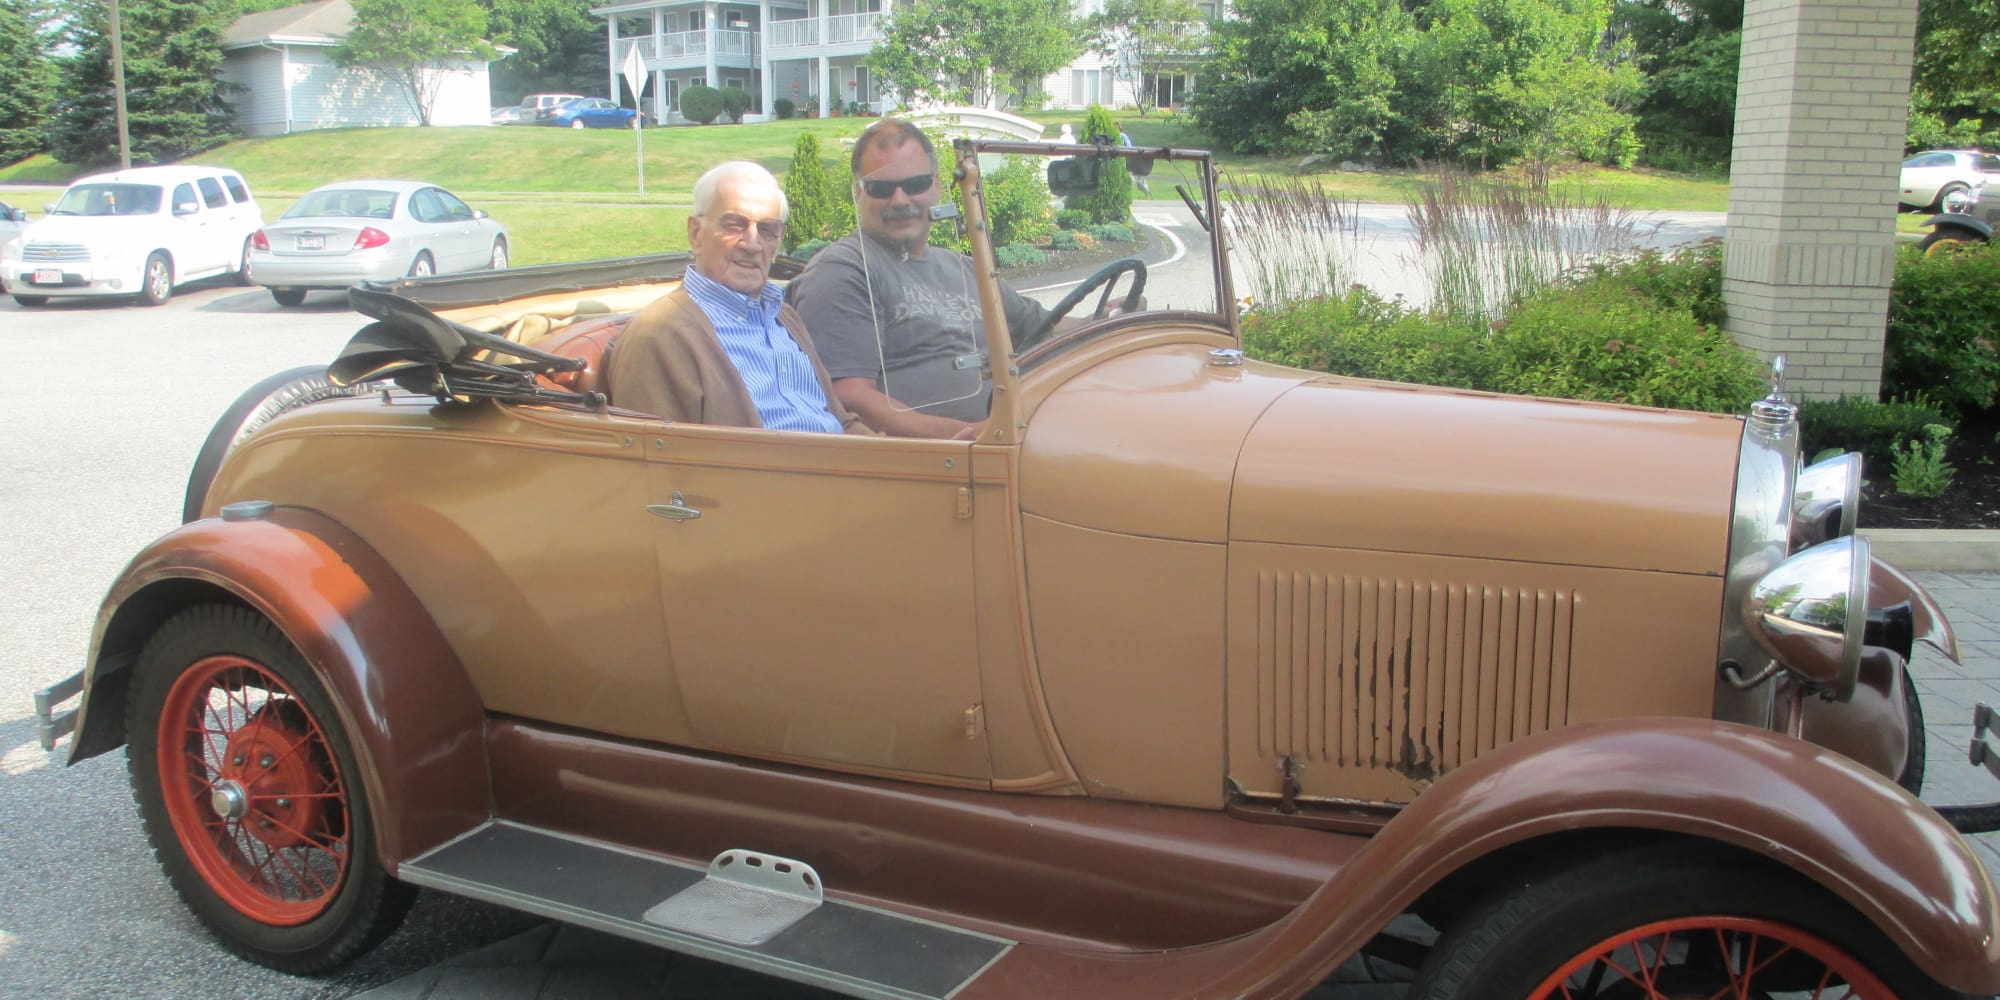 Residents in a classic car at Salishan Gracious Retirement Living in Spring Hill, Florida